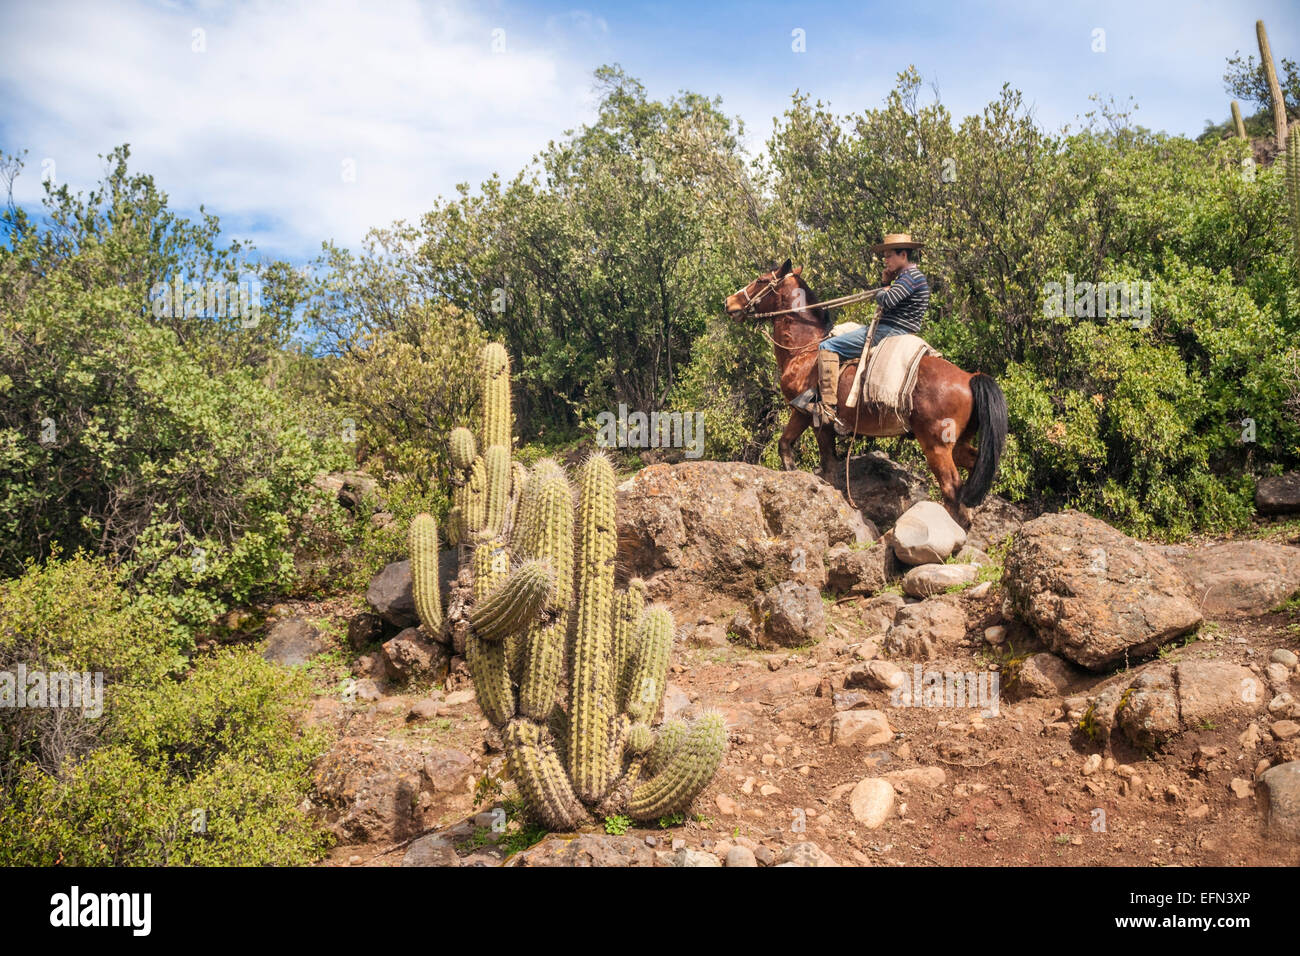 Chilean cowboy (arriero) rides his horse past cactus and rocks up a mountain in El Toyo region of Cajon del Maipo, - Stock Image